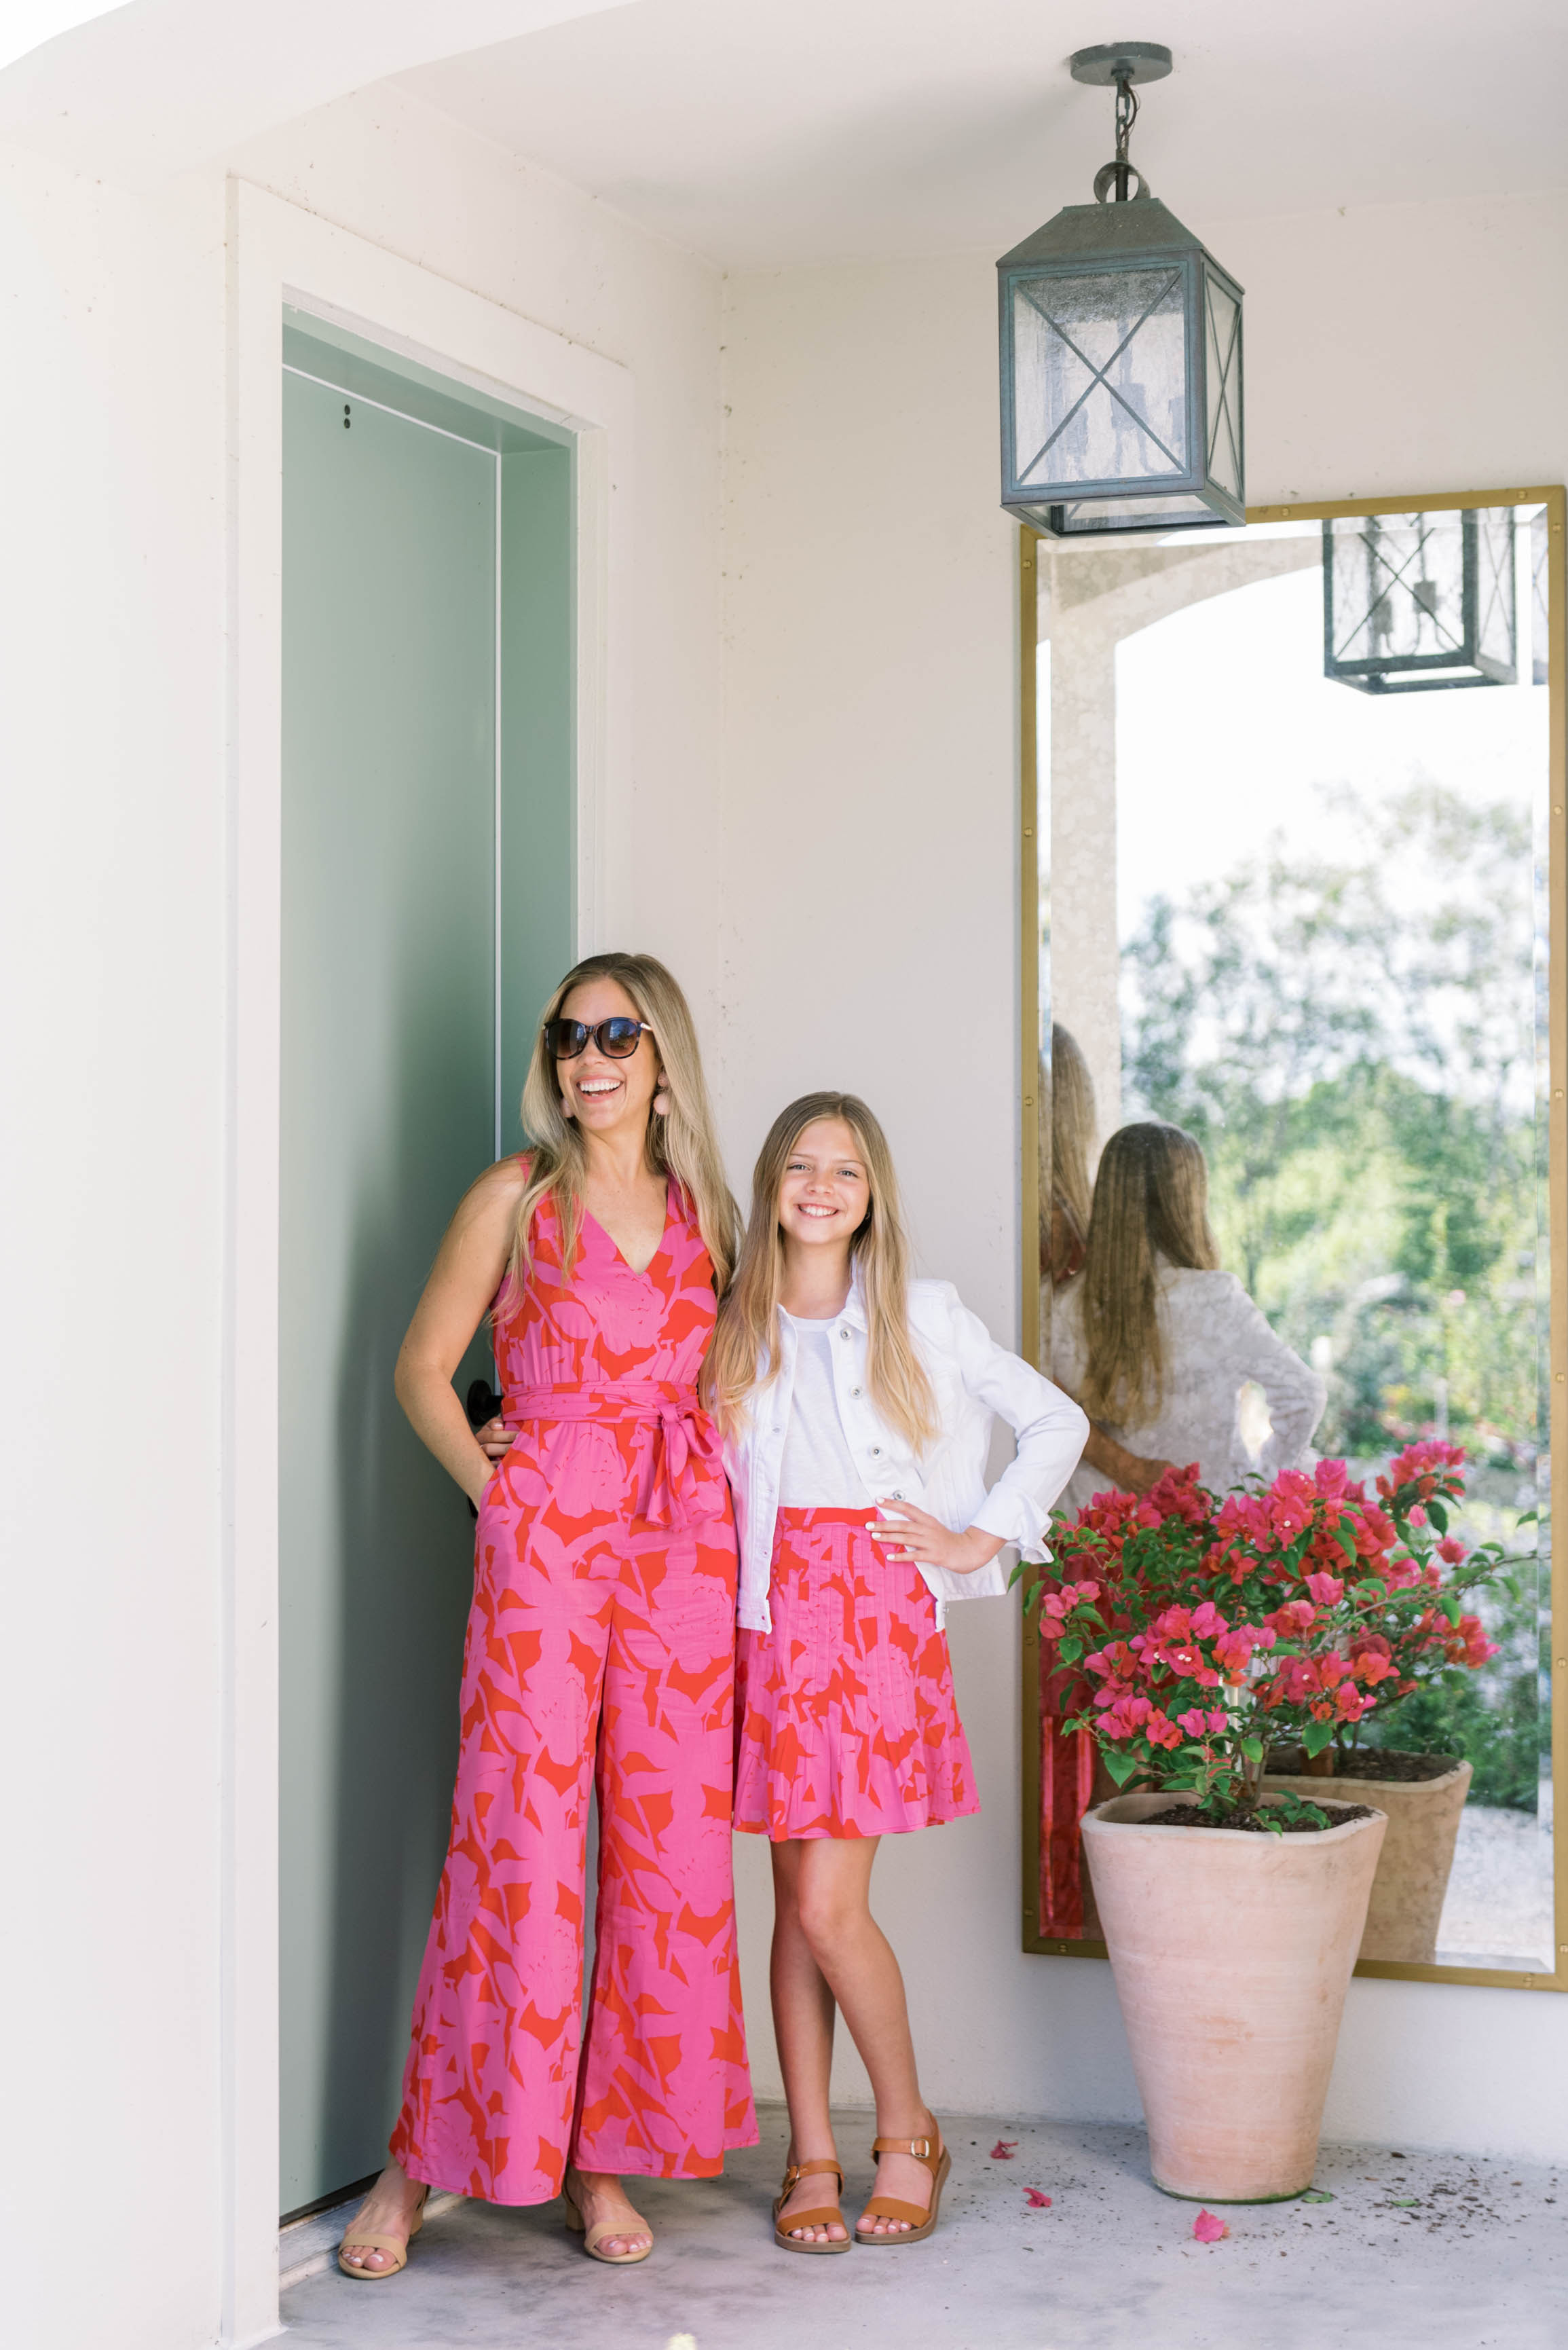 Fashion: Vineyard Vines Spring Celebration with Palm Beach Lately